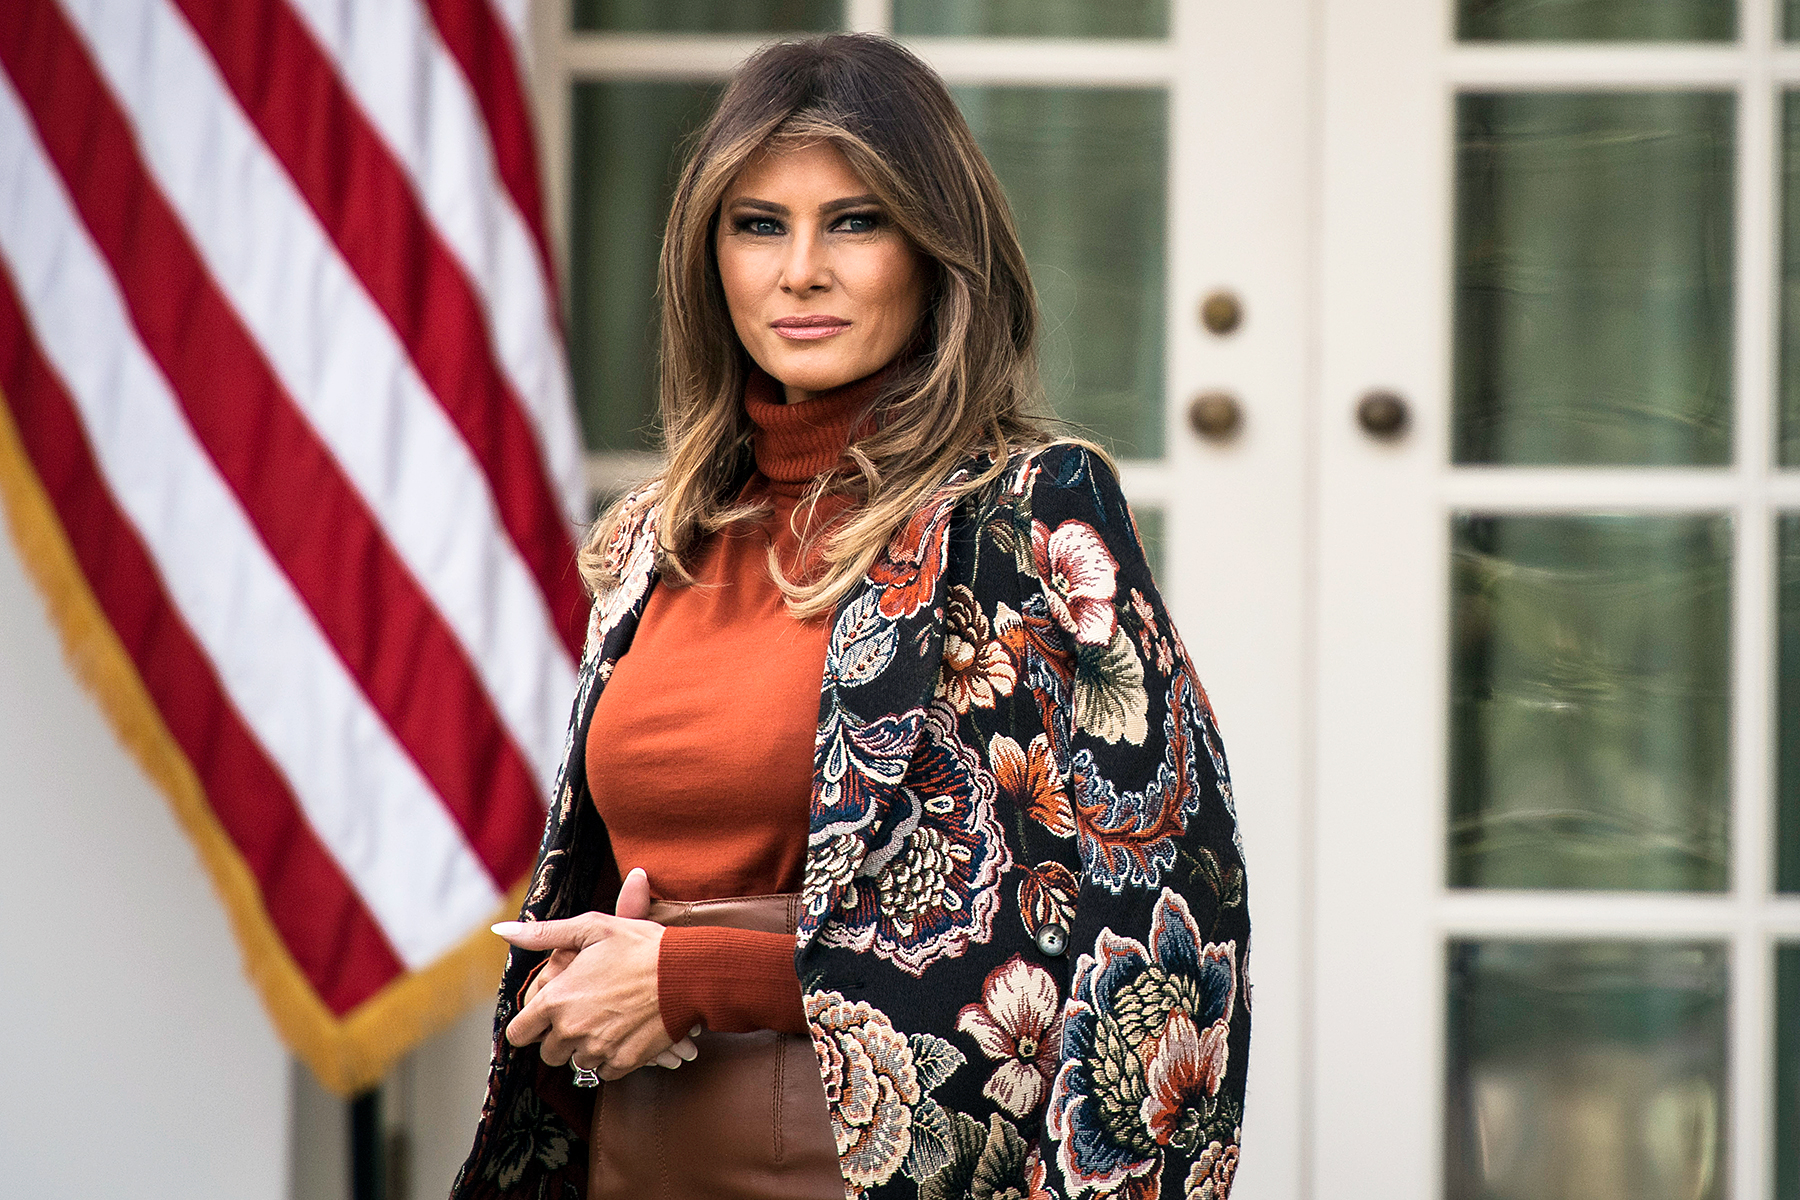 Melania Trump never wanted to be First Lady, report says